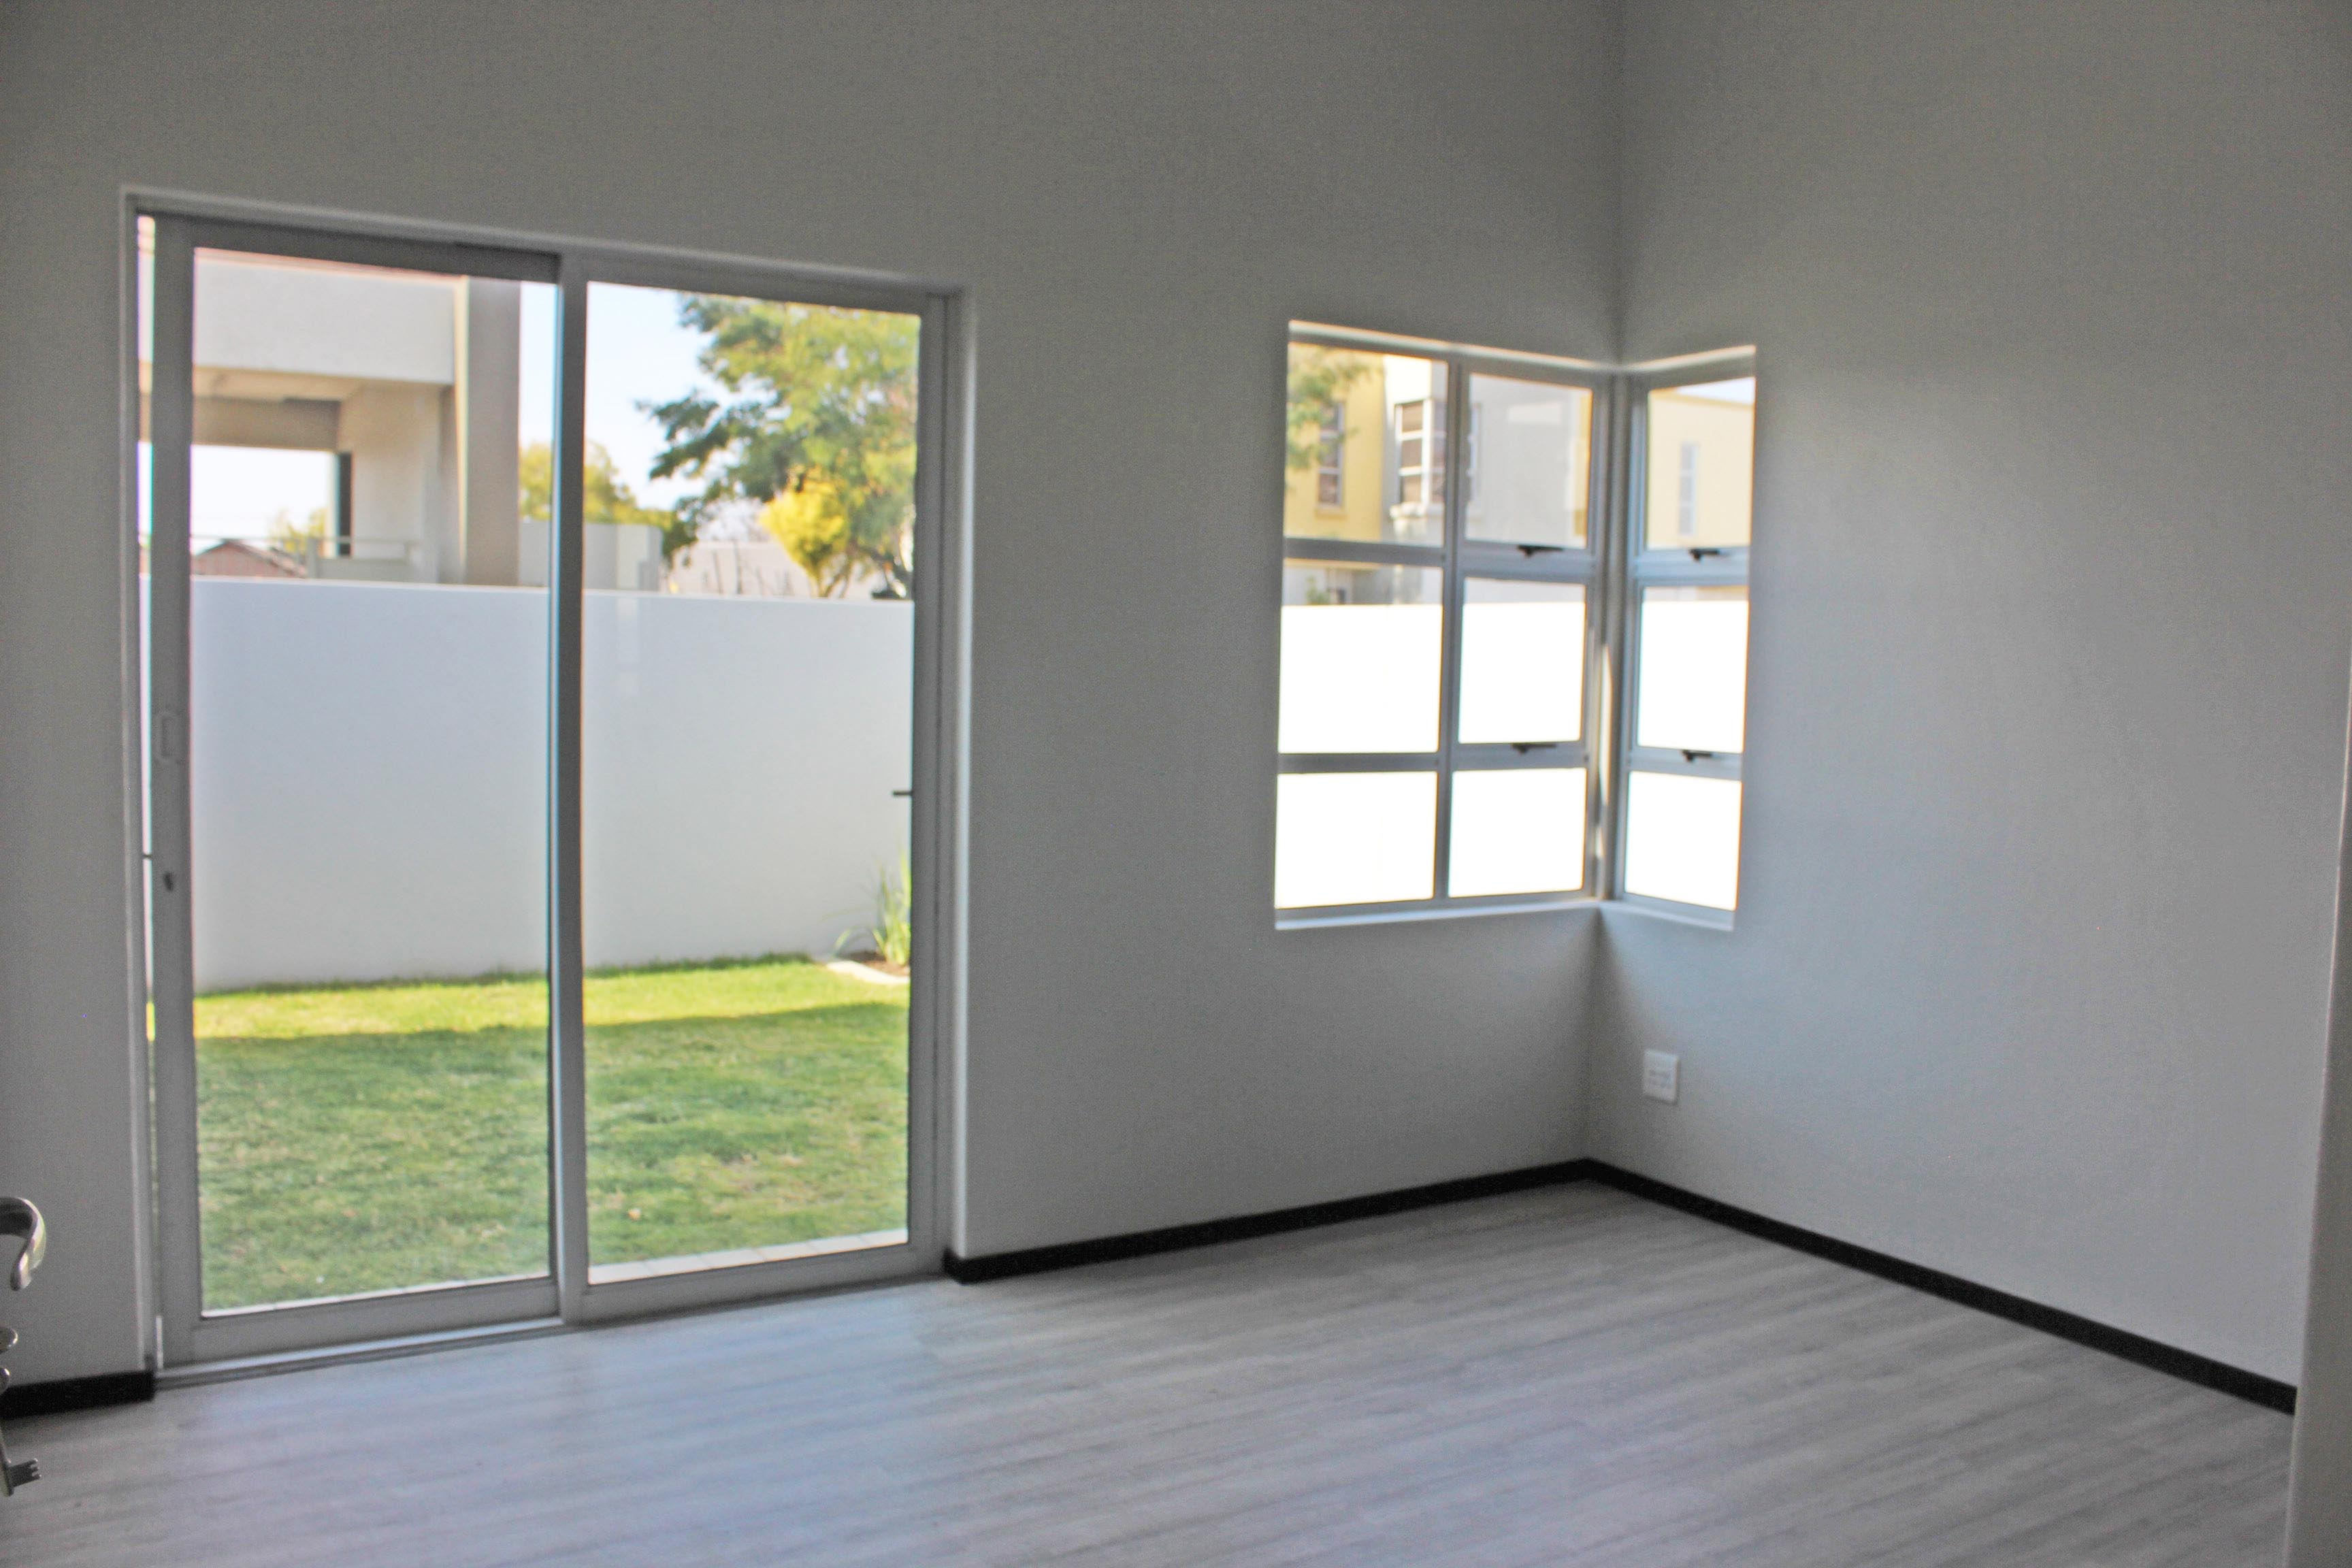 3 Bedroom Townhouse for sale in North Riding ENT0075308 : photo#9